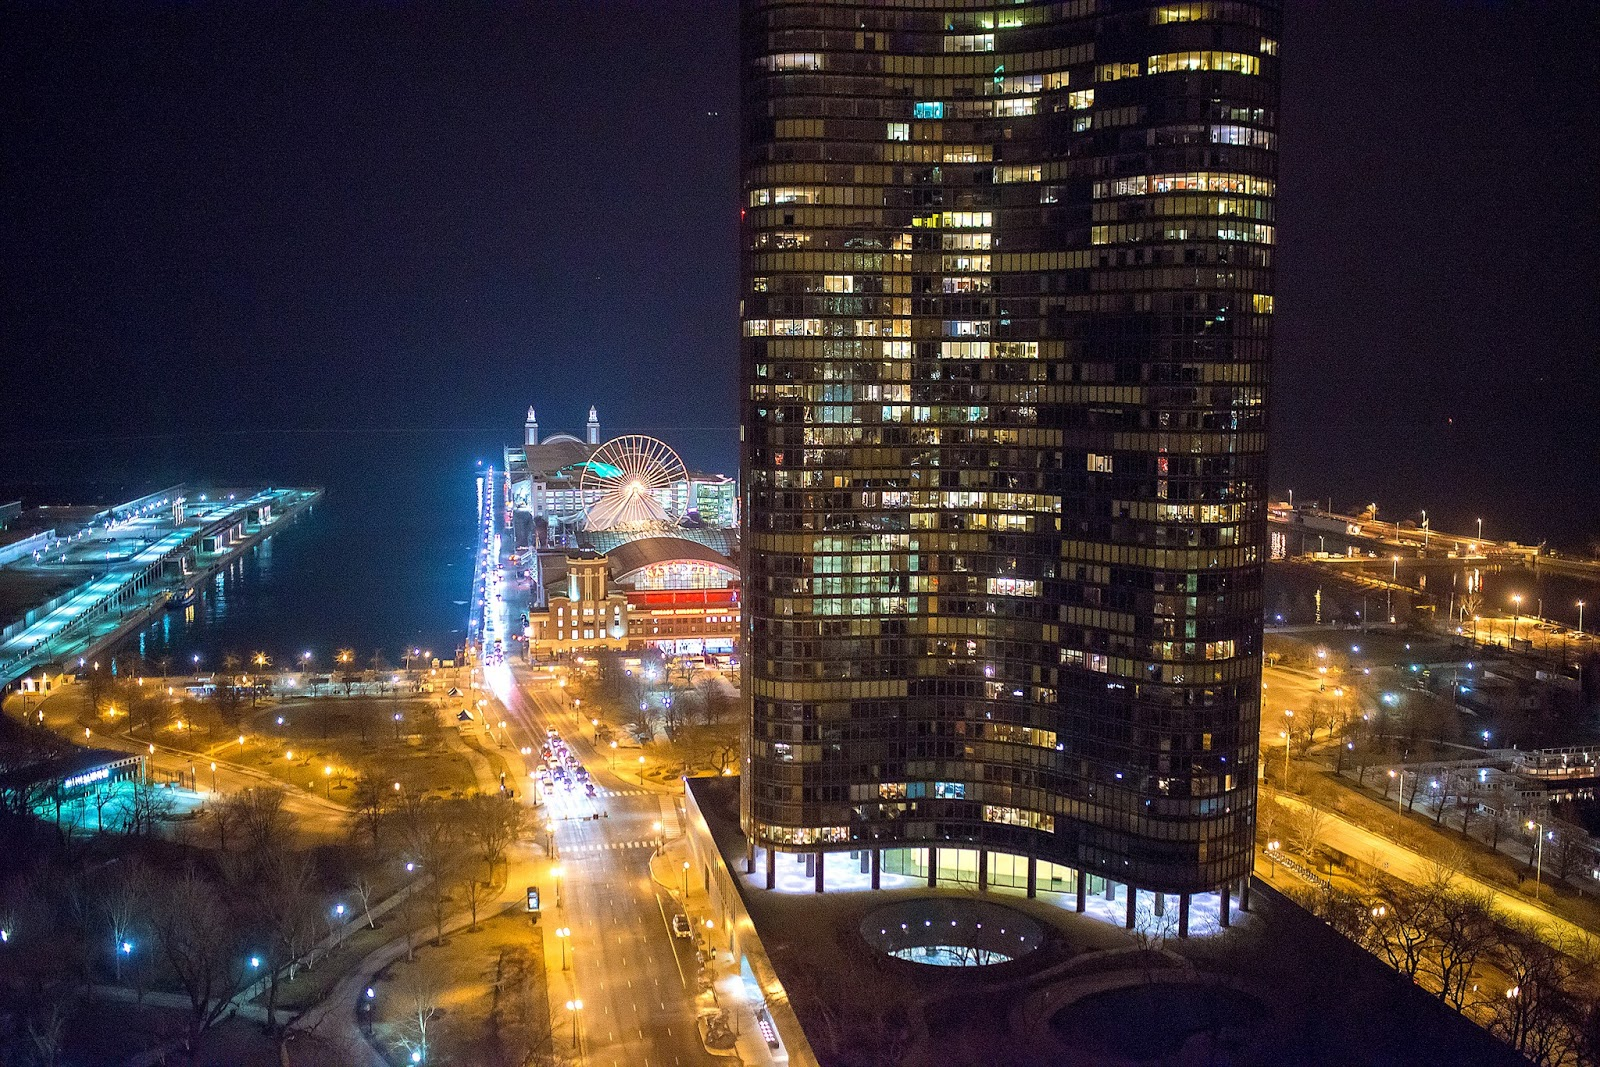 Navy Pier Night Photo